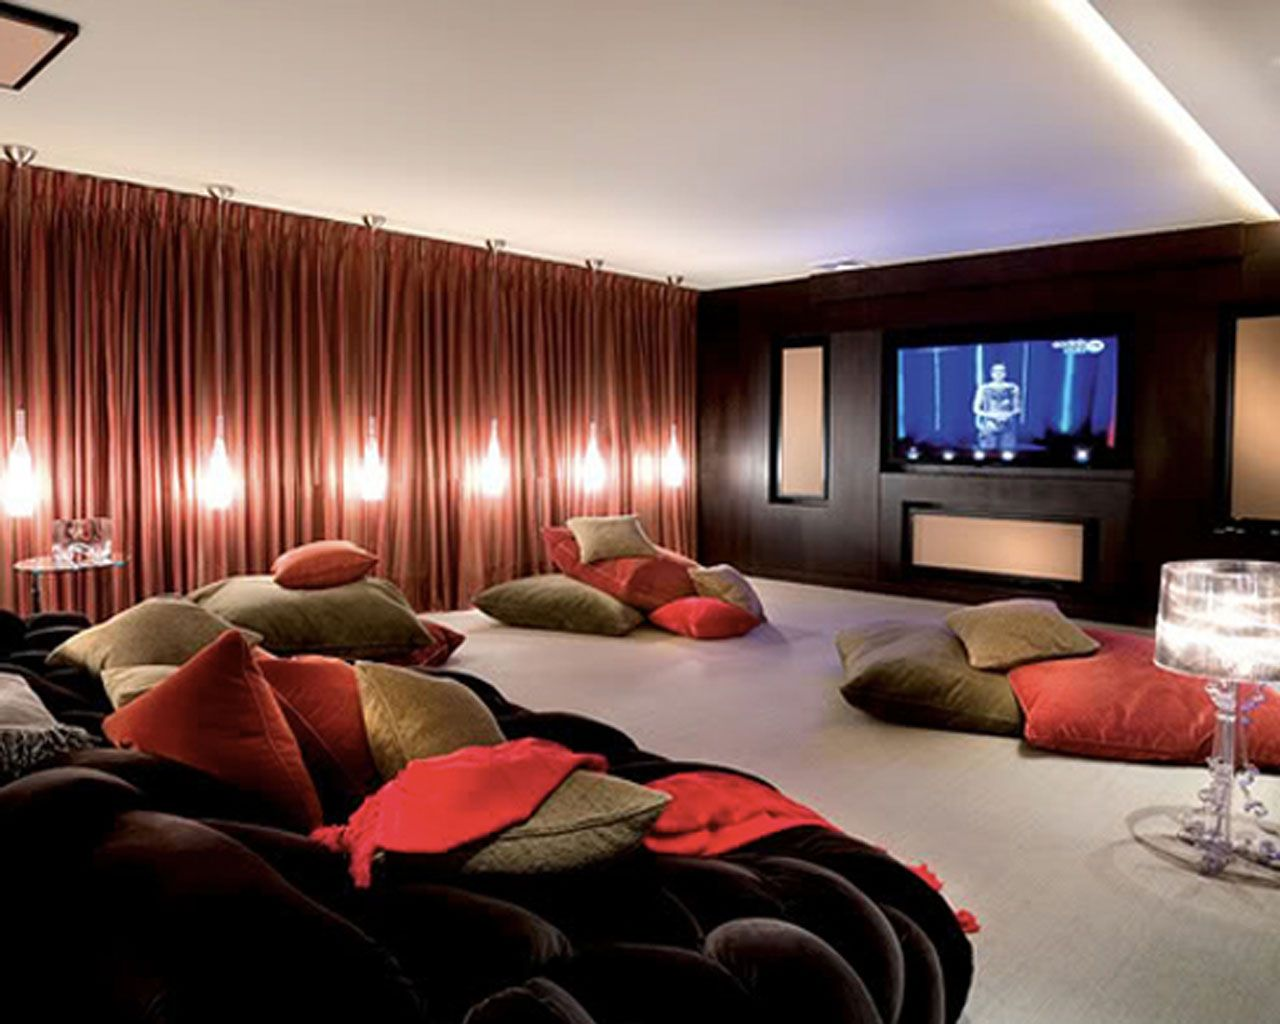 Home Theater Interiors Decoration Fascinating Image Of Home Theater Design And Decoration Www .